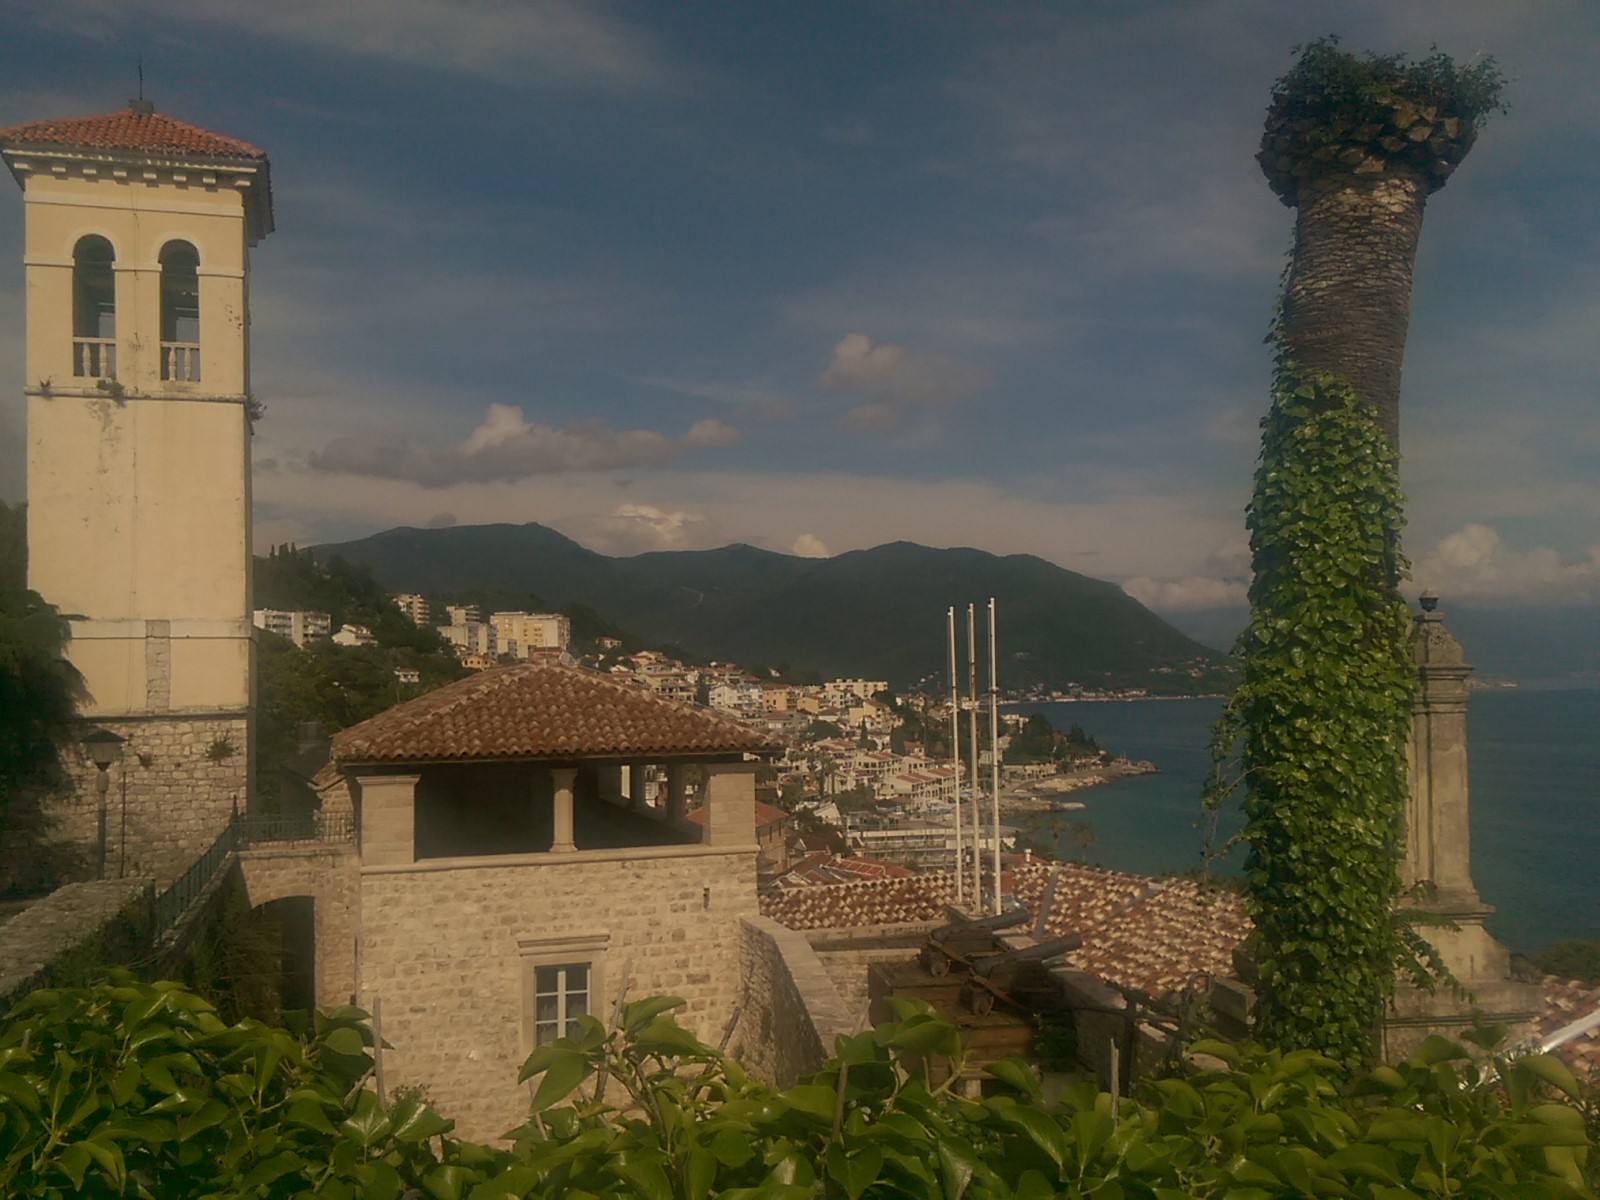 A church tower on the left and a tall ivy covered tree on the right, with old town in between stretching into the distance, and further mountains